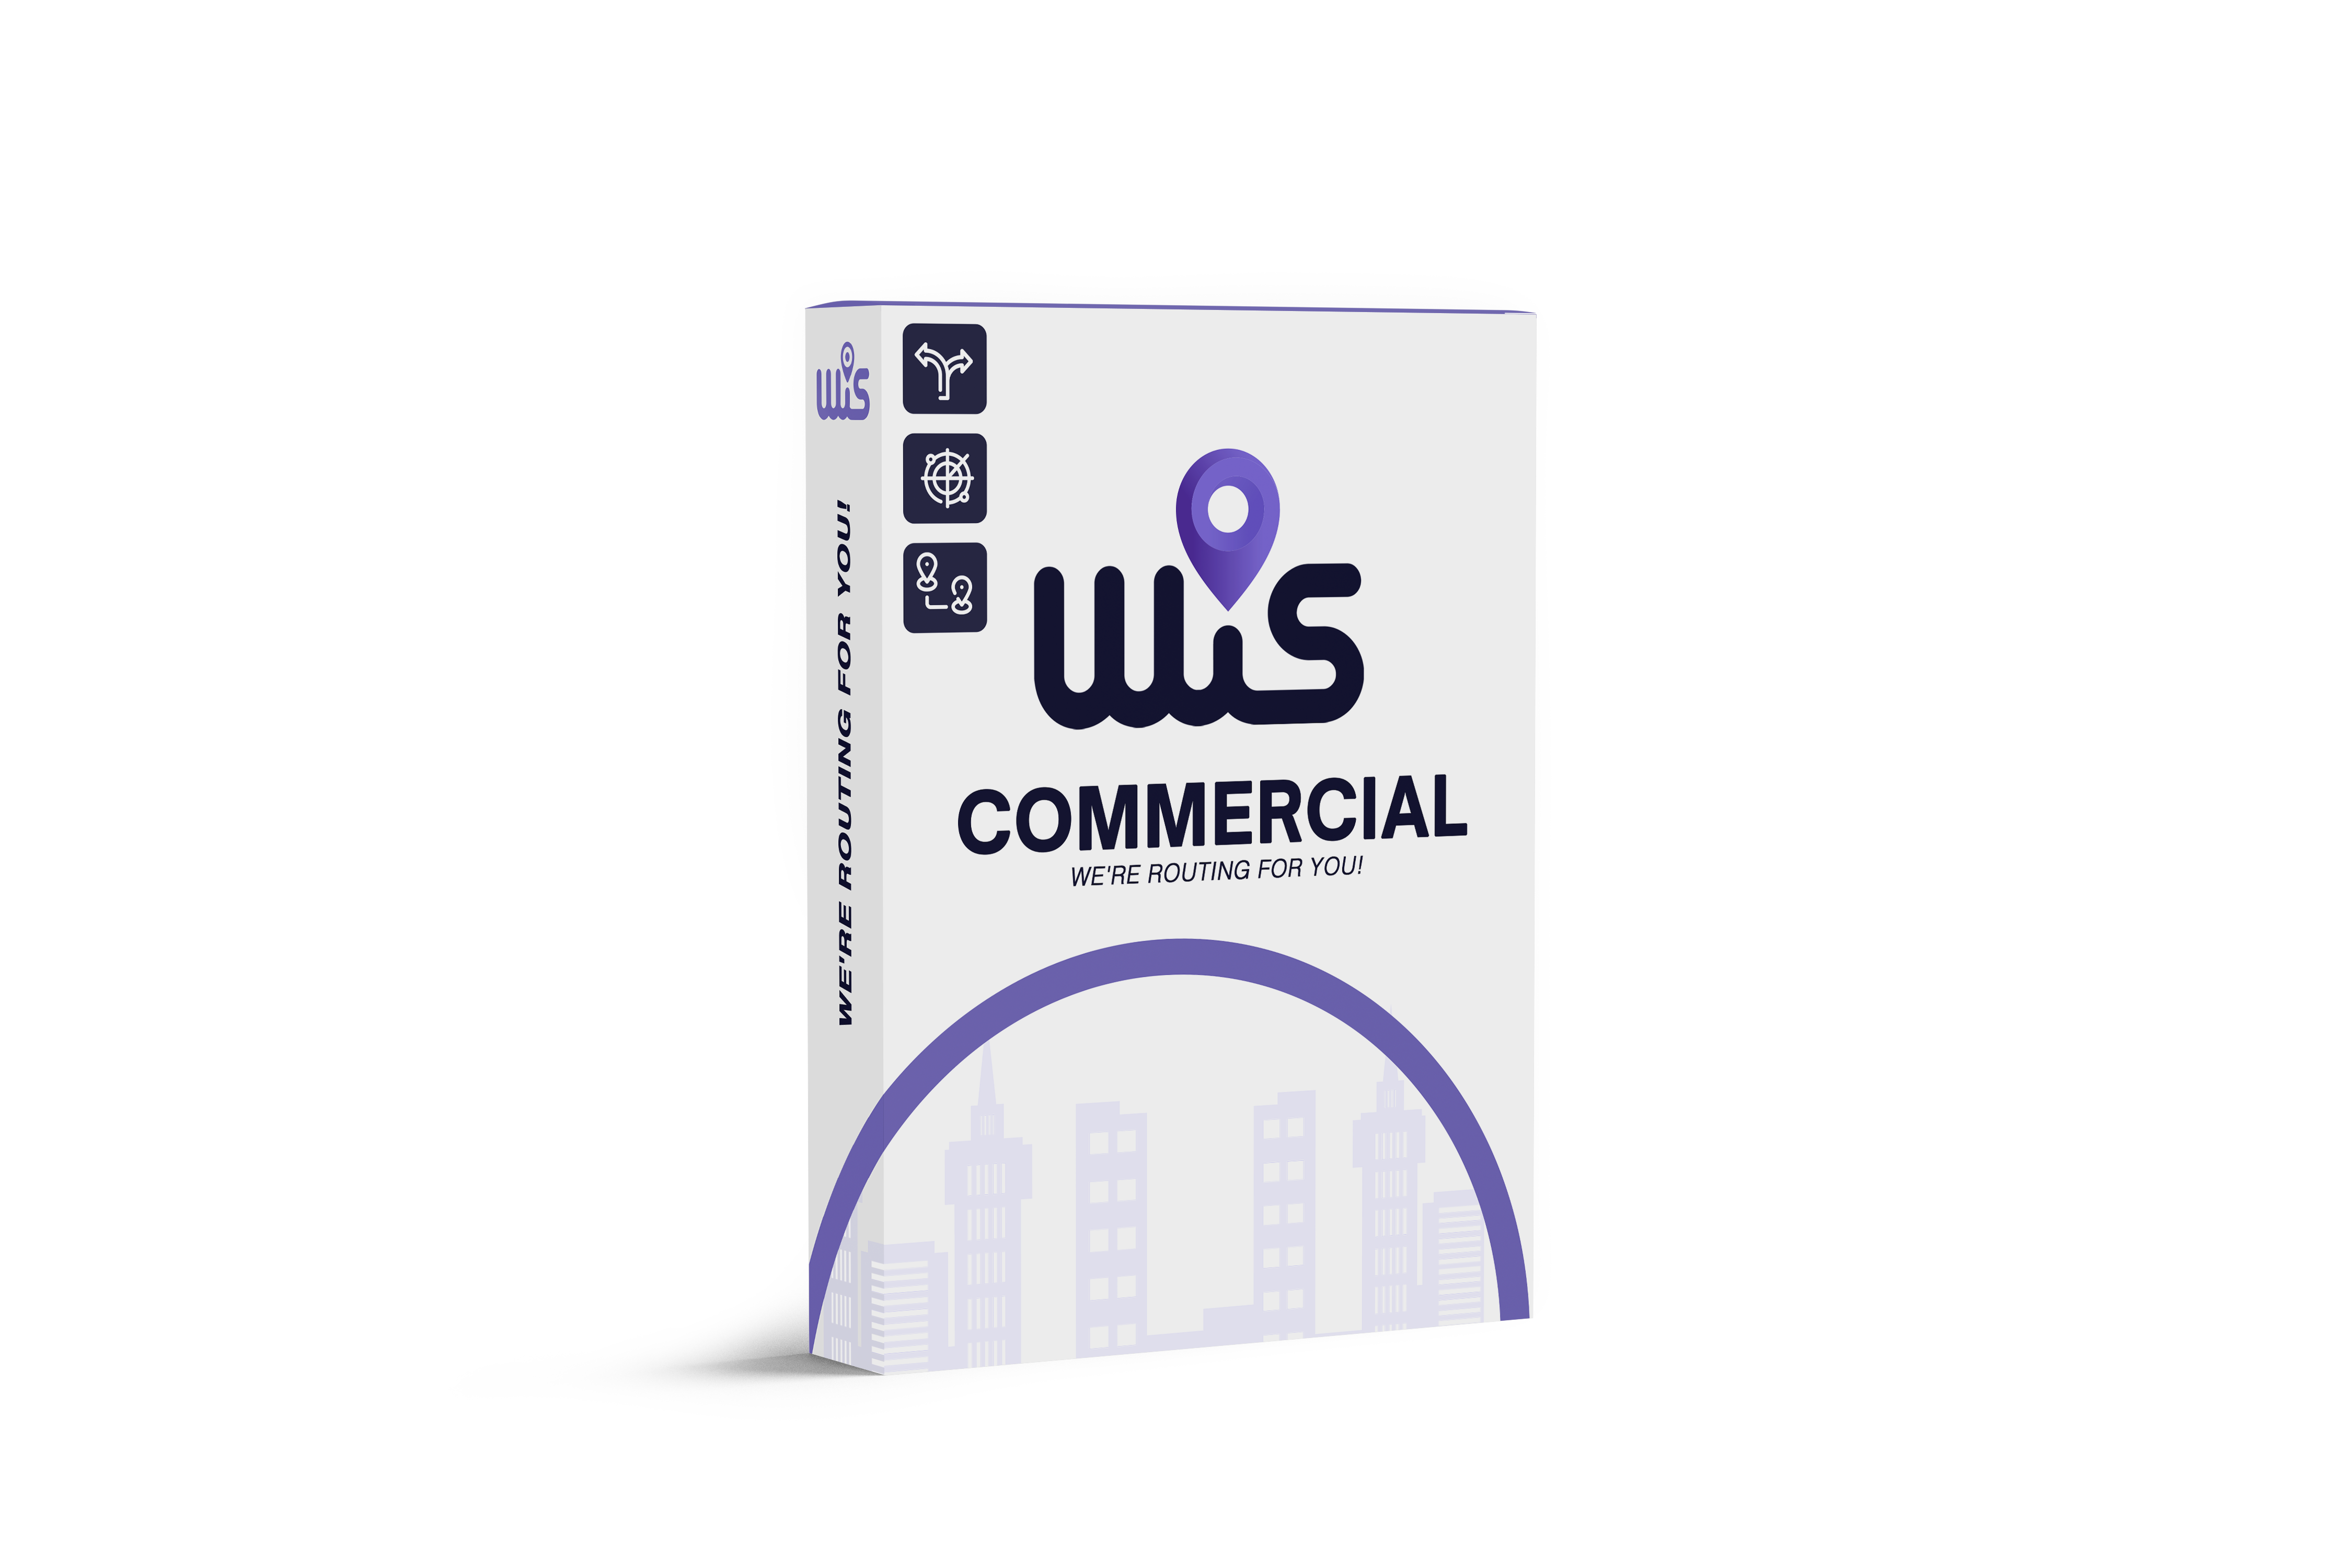 Wis Commercial Medium Shadow 2 PNG